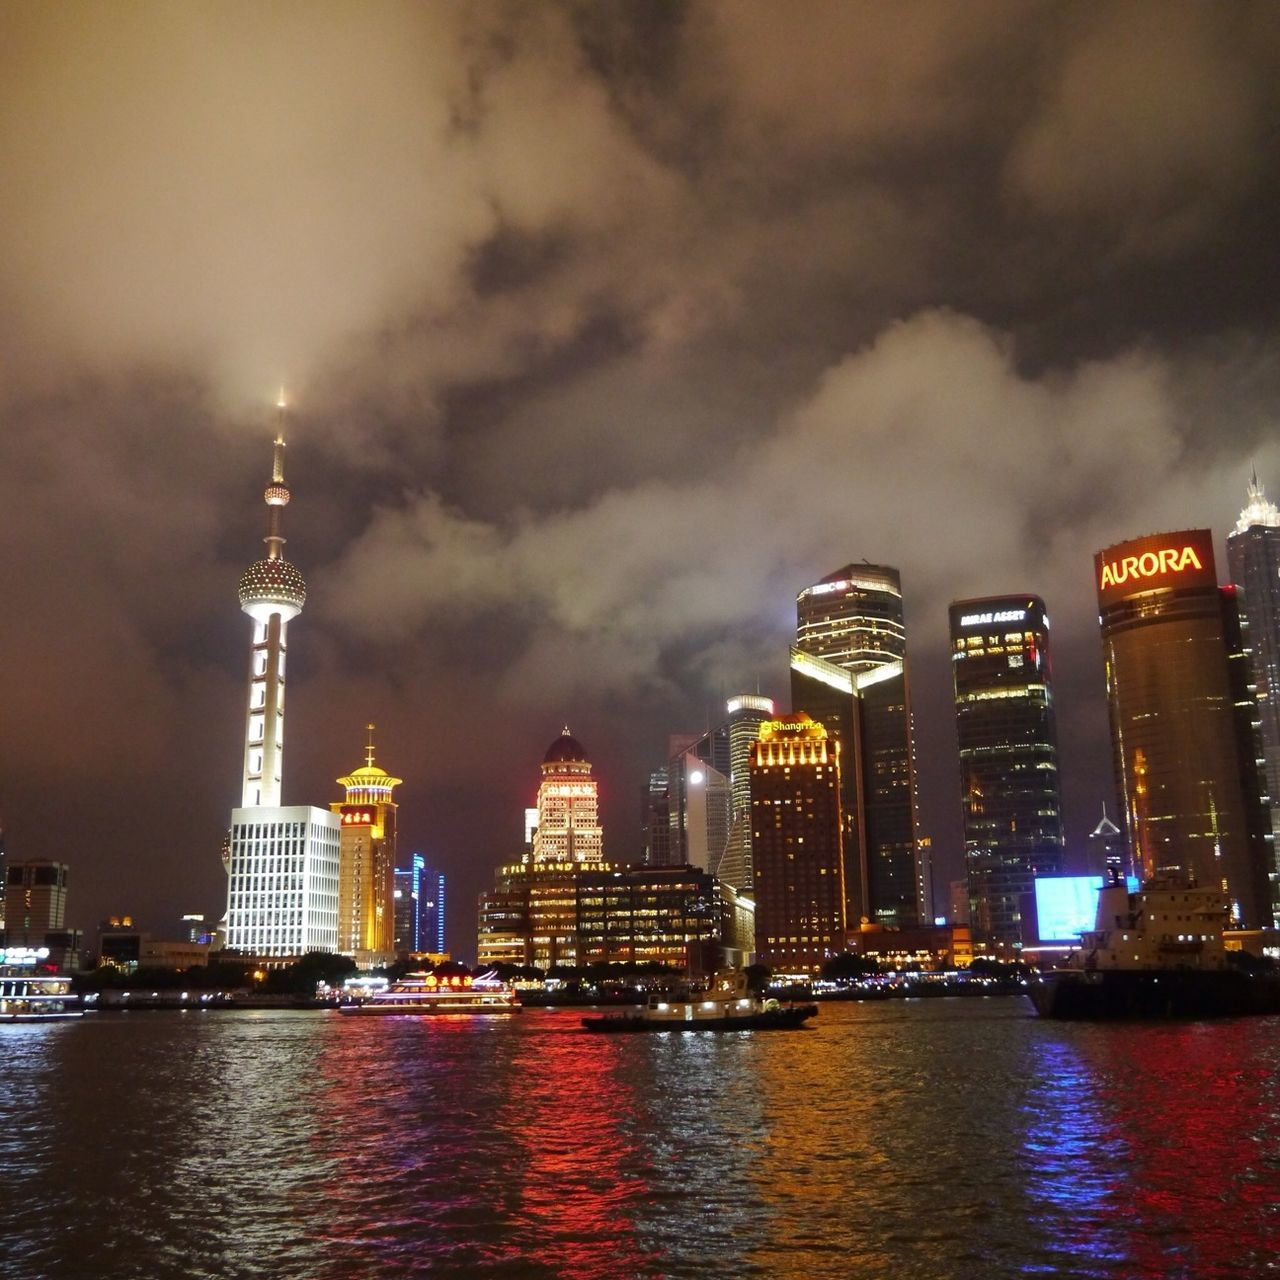 architecture, illuminated, building exterior, tall - high, night, city, built structure, sky, skyscraper, travel destinations, cloud - sky, water, tower, river, waterfront, cityscape, outdoors, no people, urban skyline, travel, modern, nautical vessel, nature